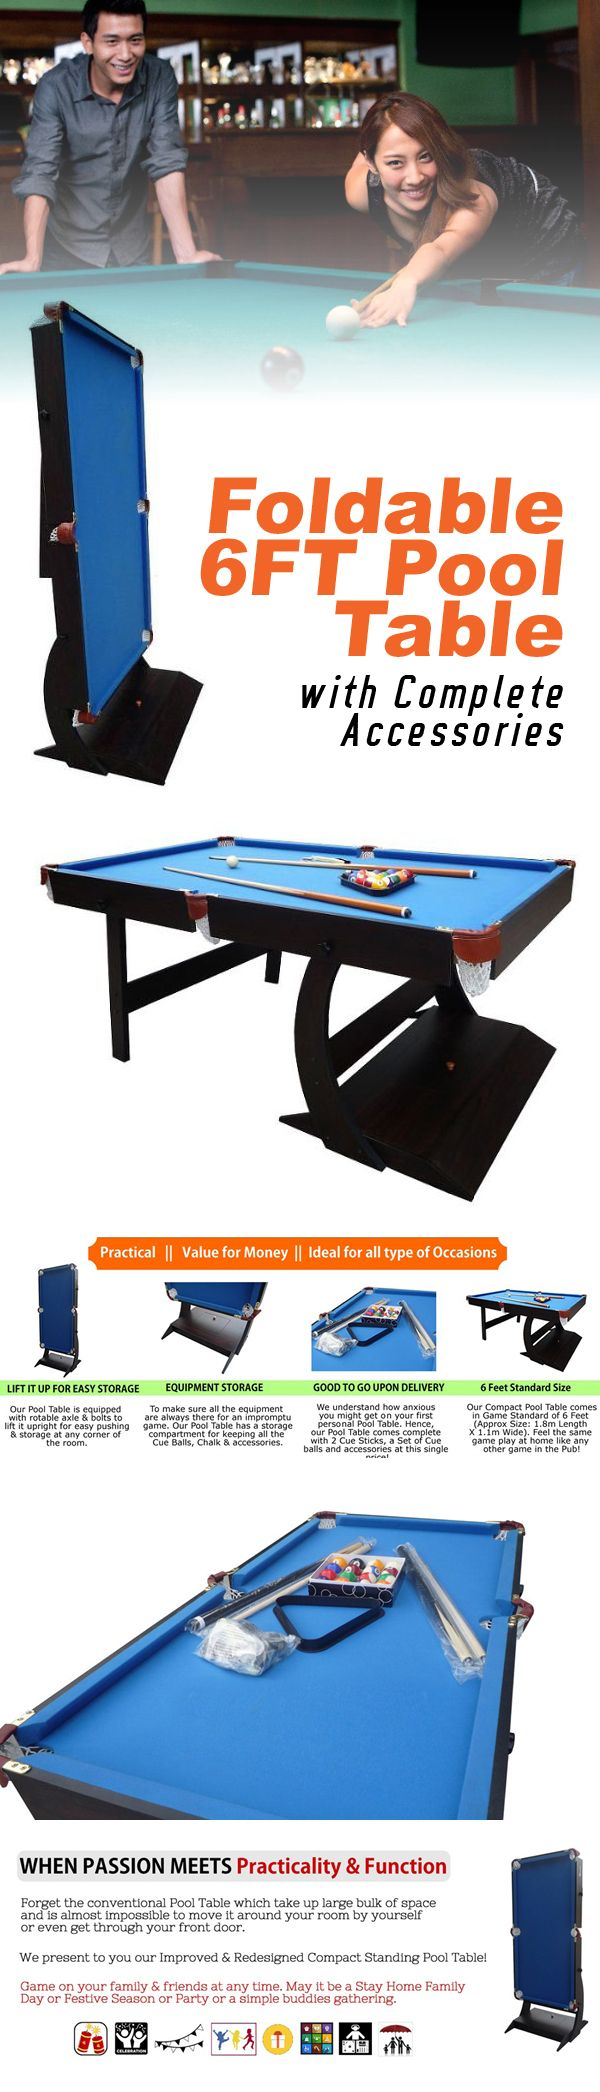 Foldable 6 Feet Pool Table With Complete Accessories + Free Delivery. Feel  The Same Game